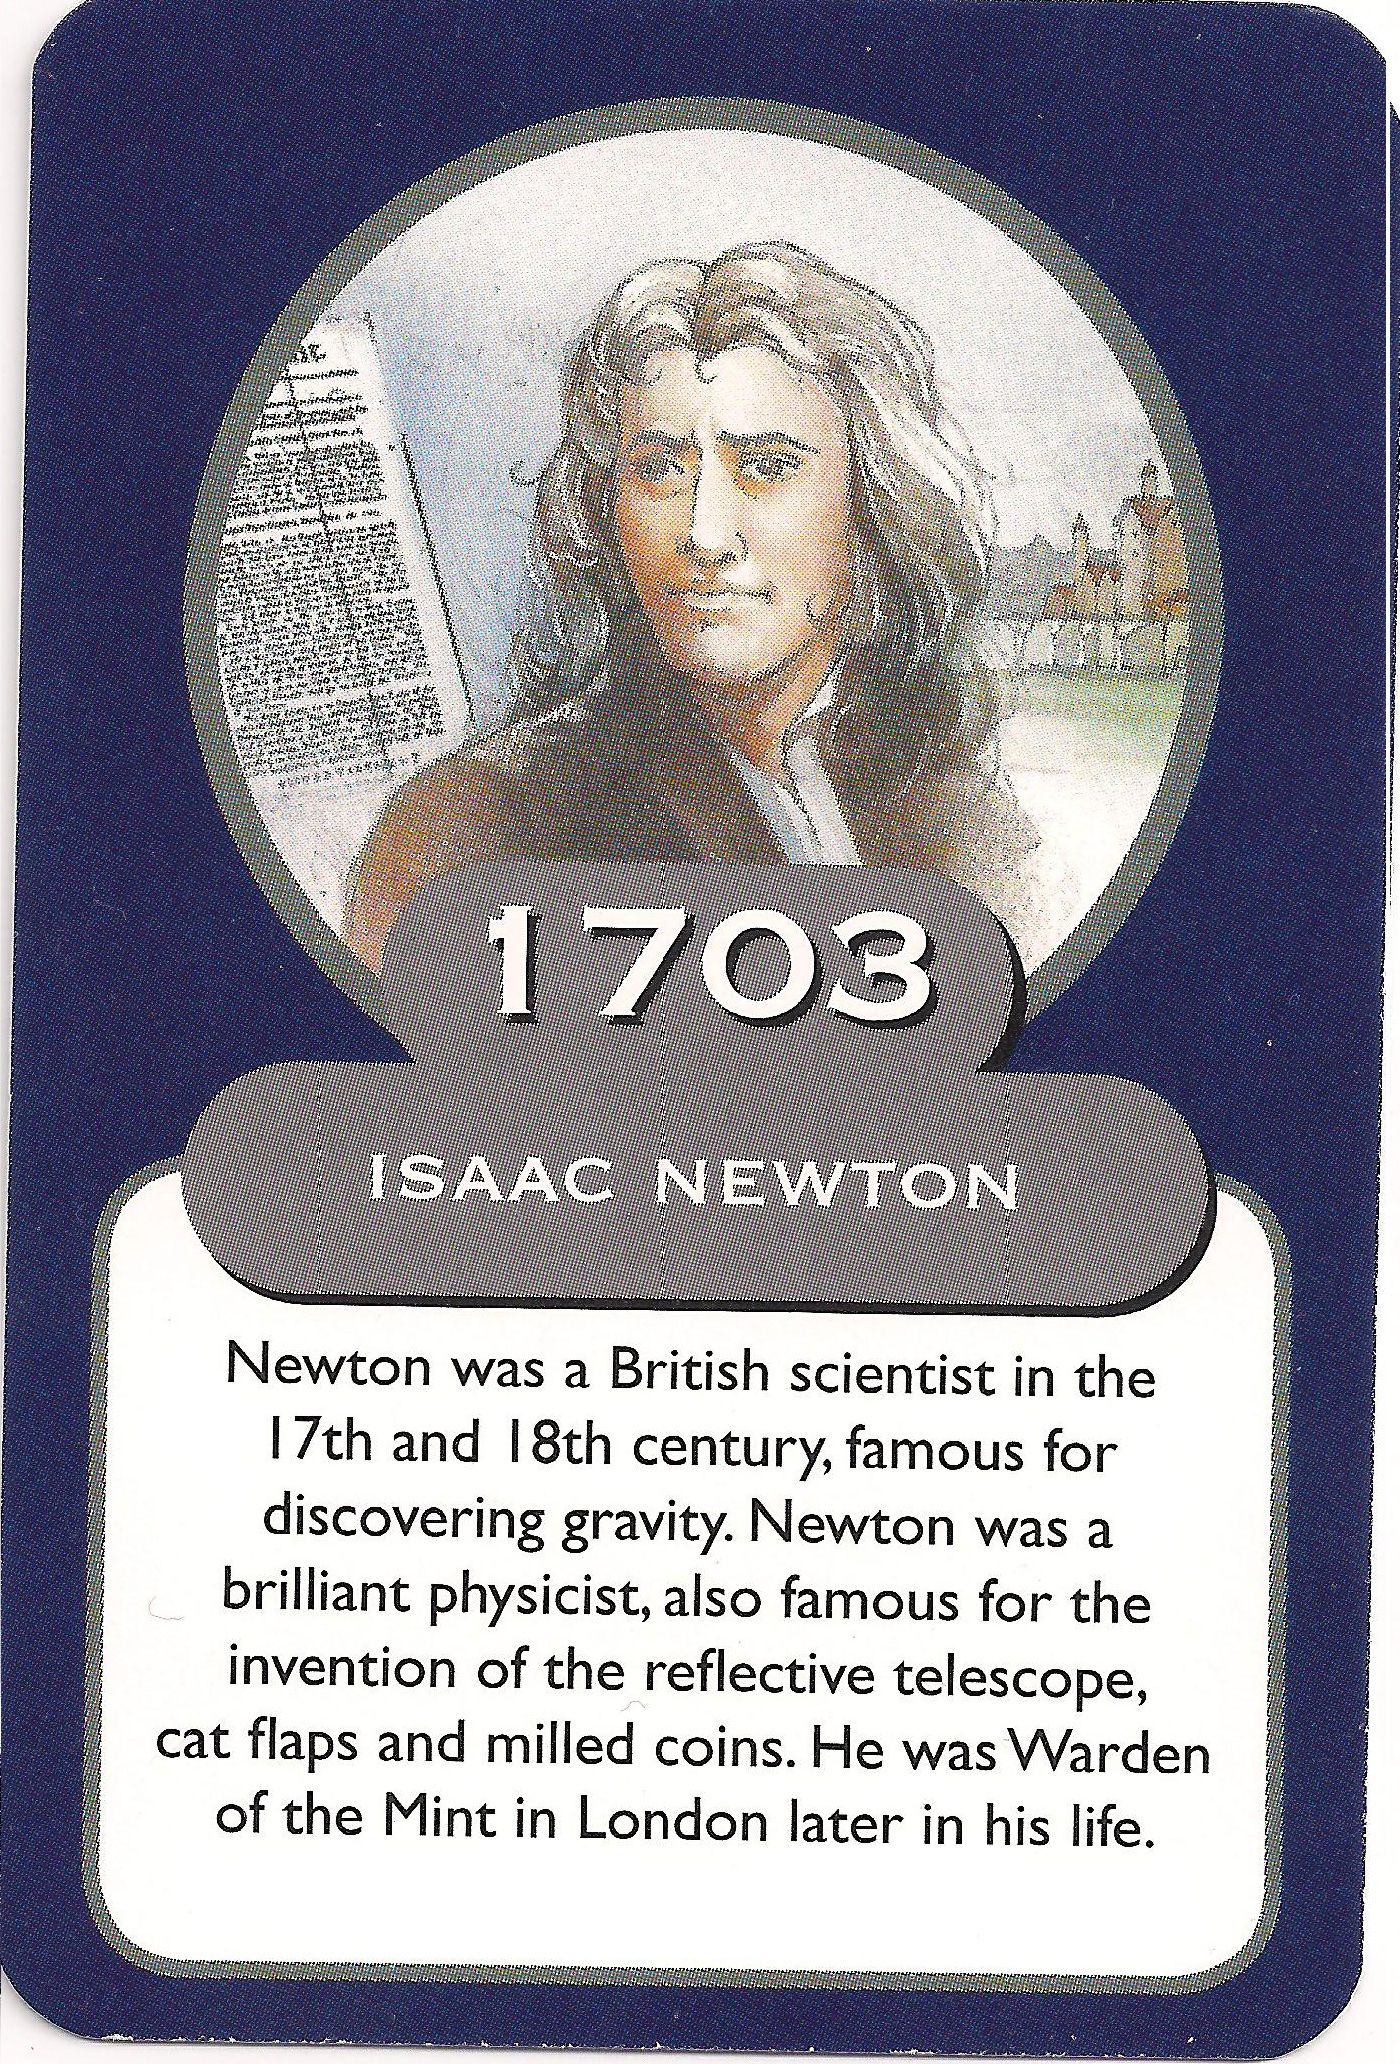 Isaac Newton and his great discoveries 80